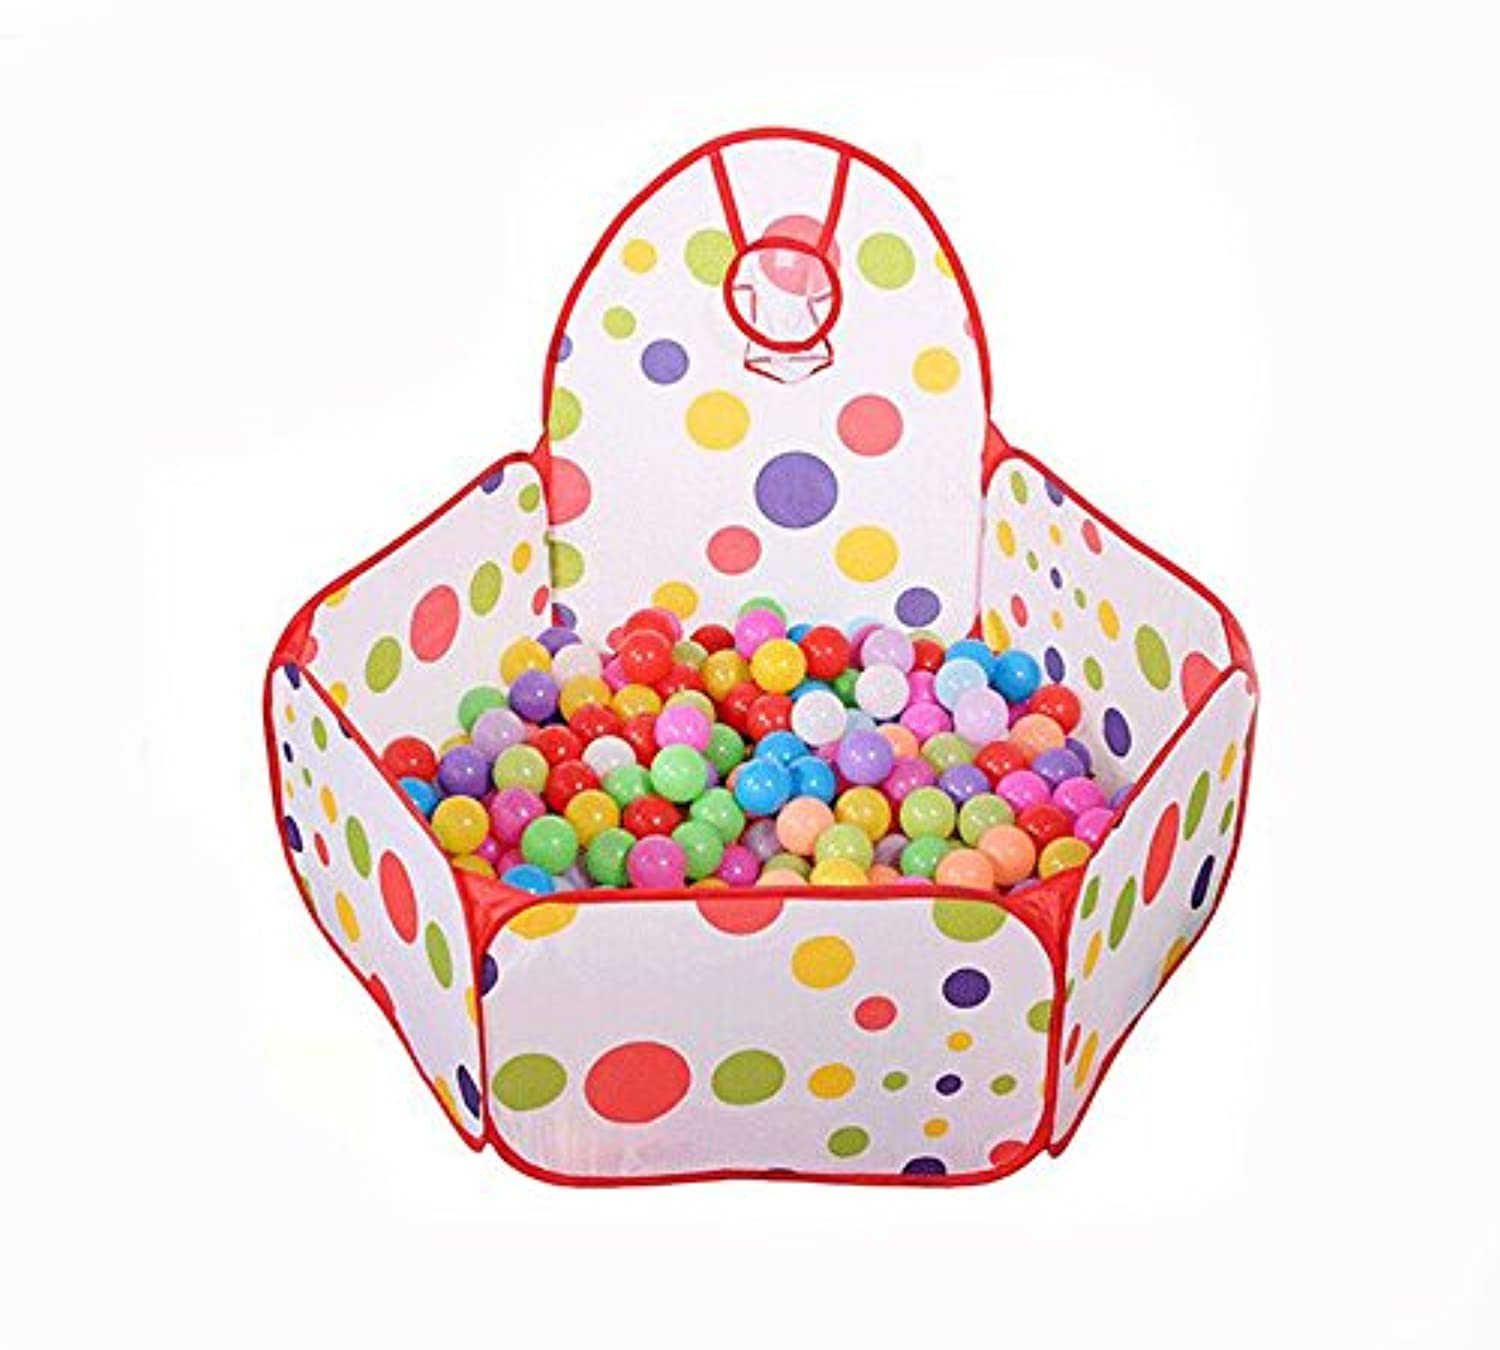 AxiEr 1.5M Kids Baby Polka Dot Cute Ocean Ball Pool Outdoor Indoor Game Play Toy Tent Hut Easy Fold Ball Pit Tent with Basketball Hoop by AxiEr